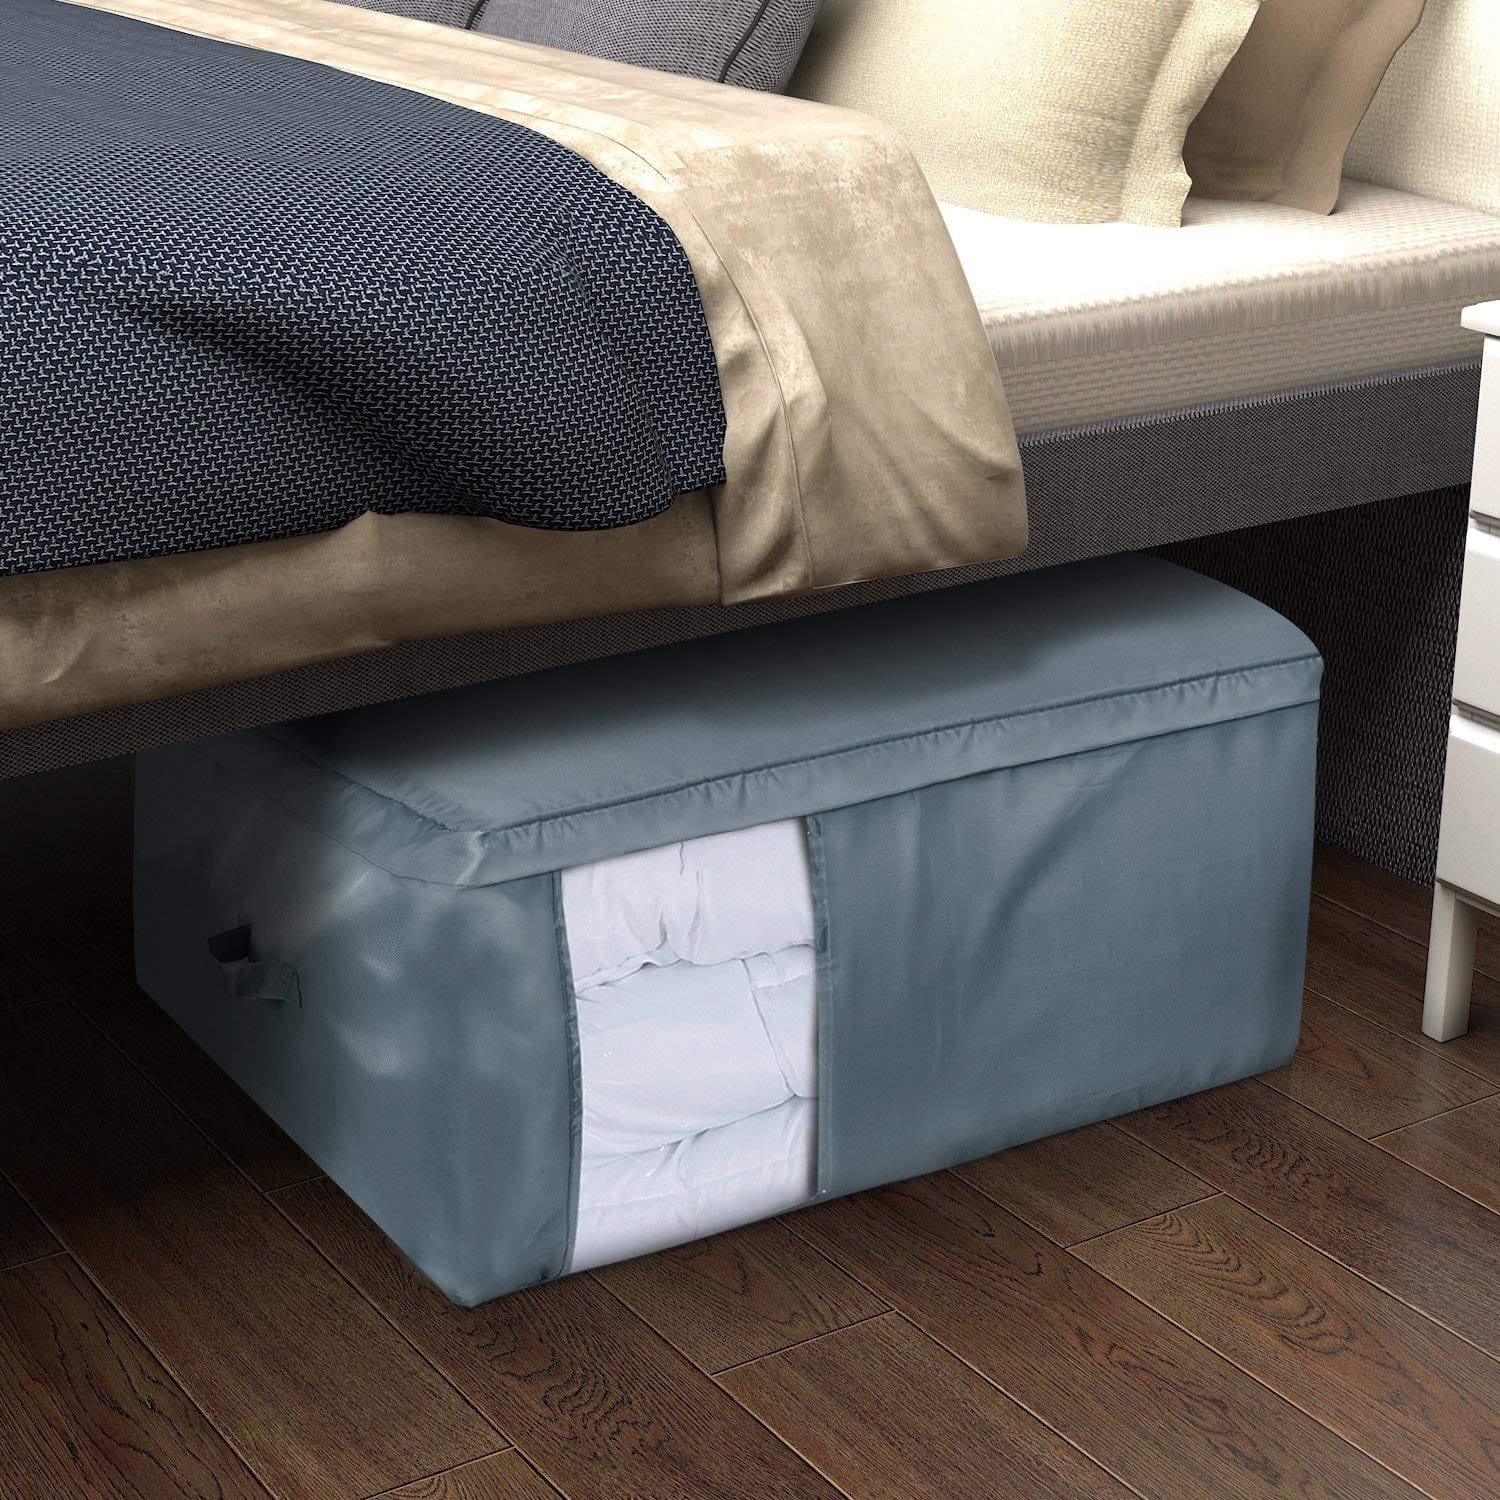 Large Capacity 105l Storage Bag Clear Window Oxford Fabric Underbed Bags Comforters Blankets Bedding Duvets Clothes Quilts Pillows Sweaters